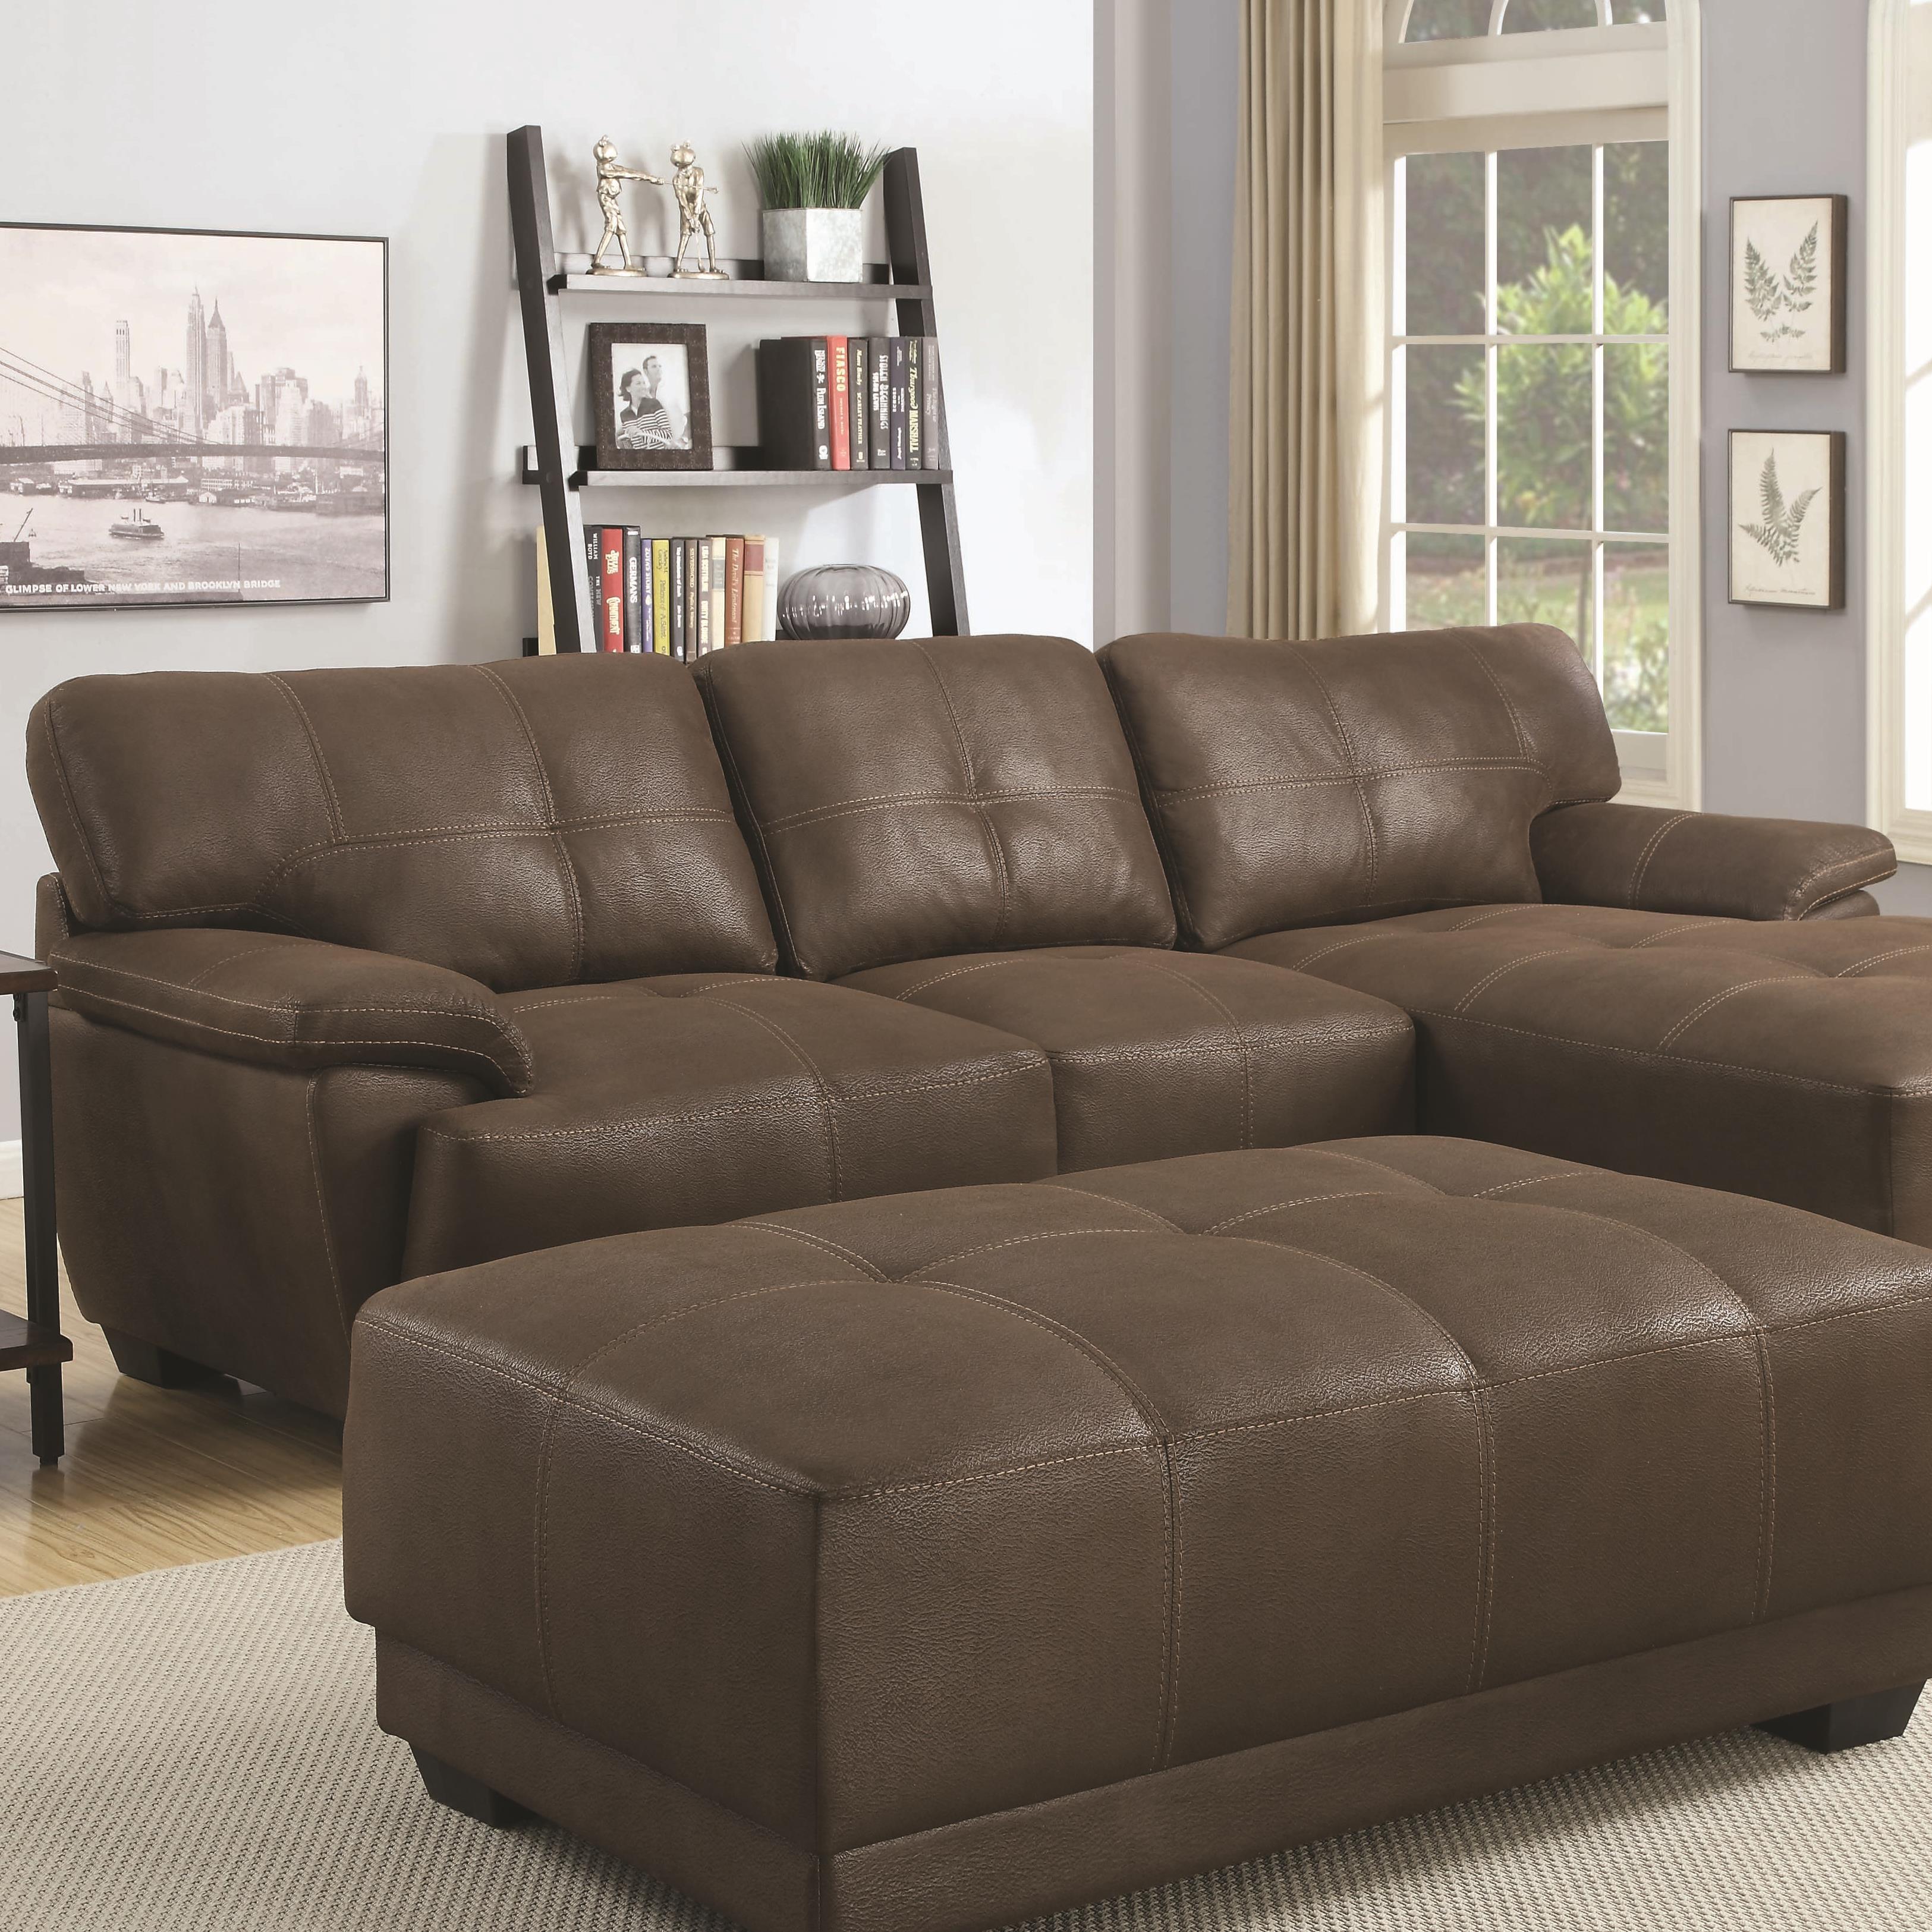 Coaster Murik Sectional - Item Number: 500325